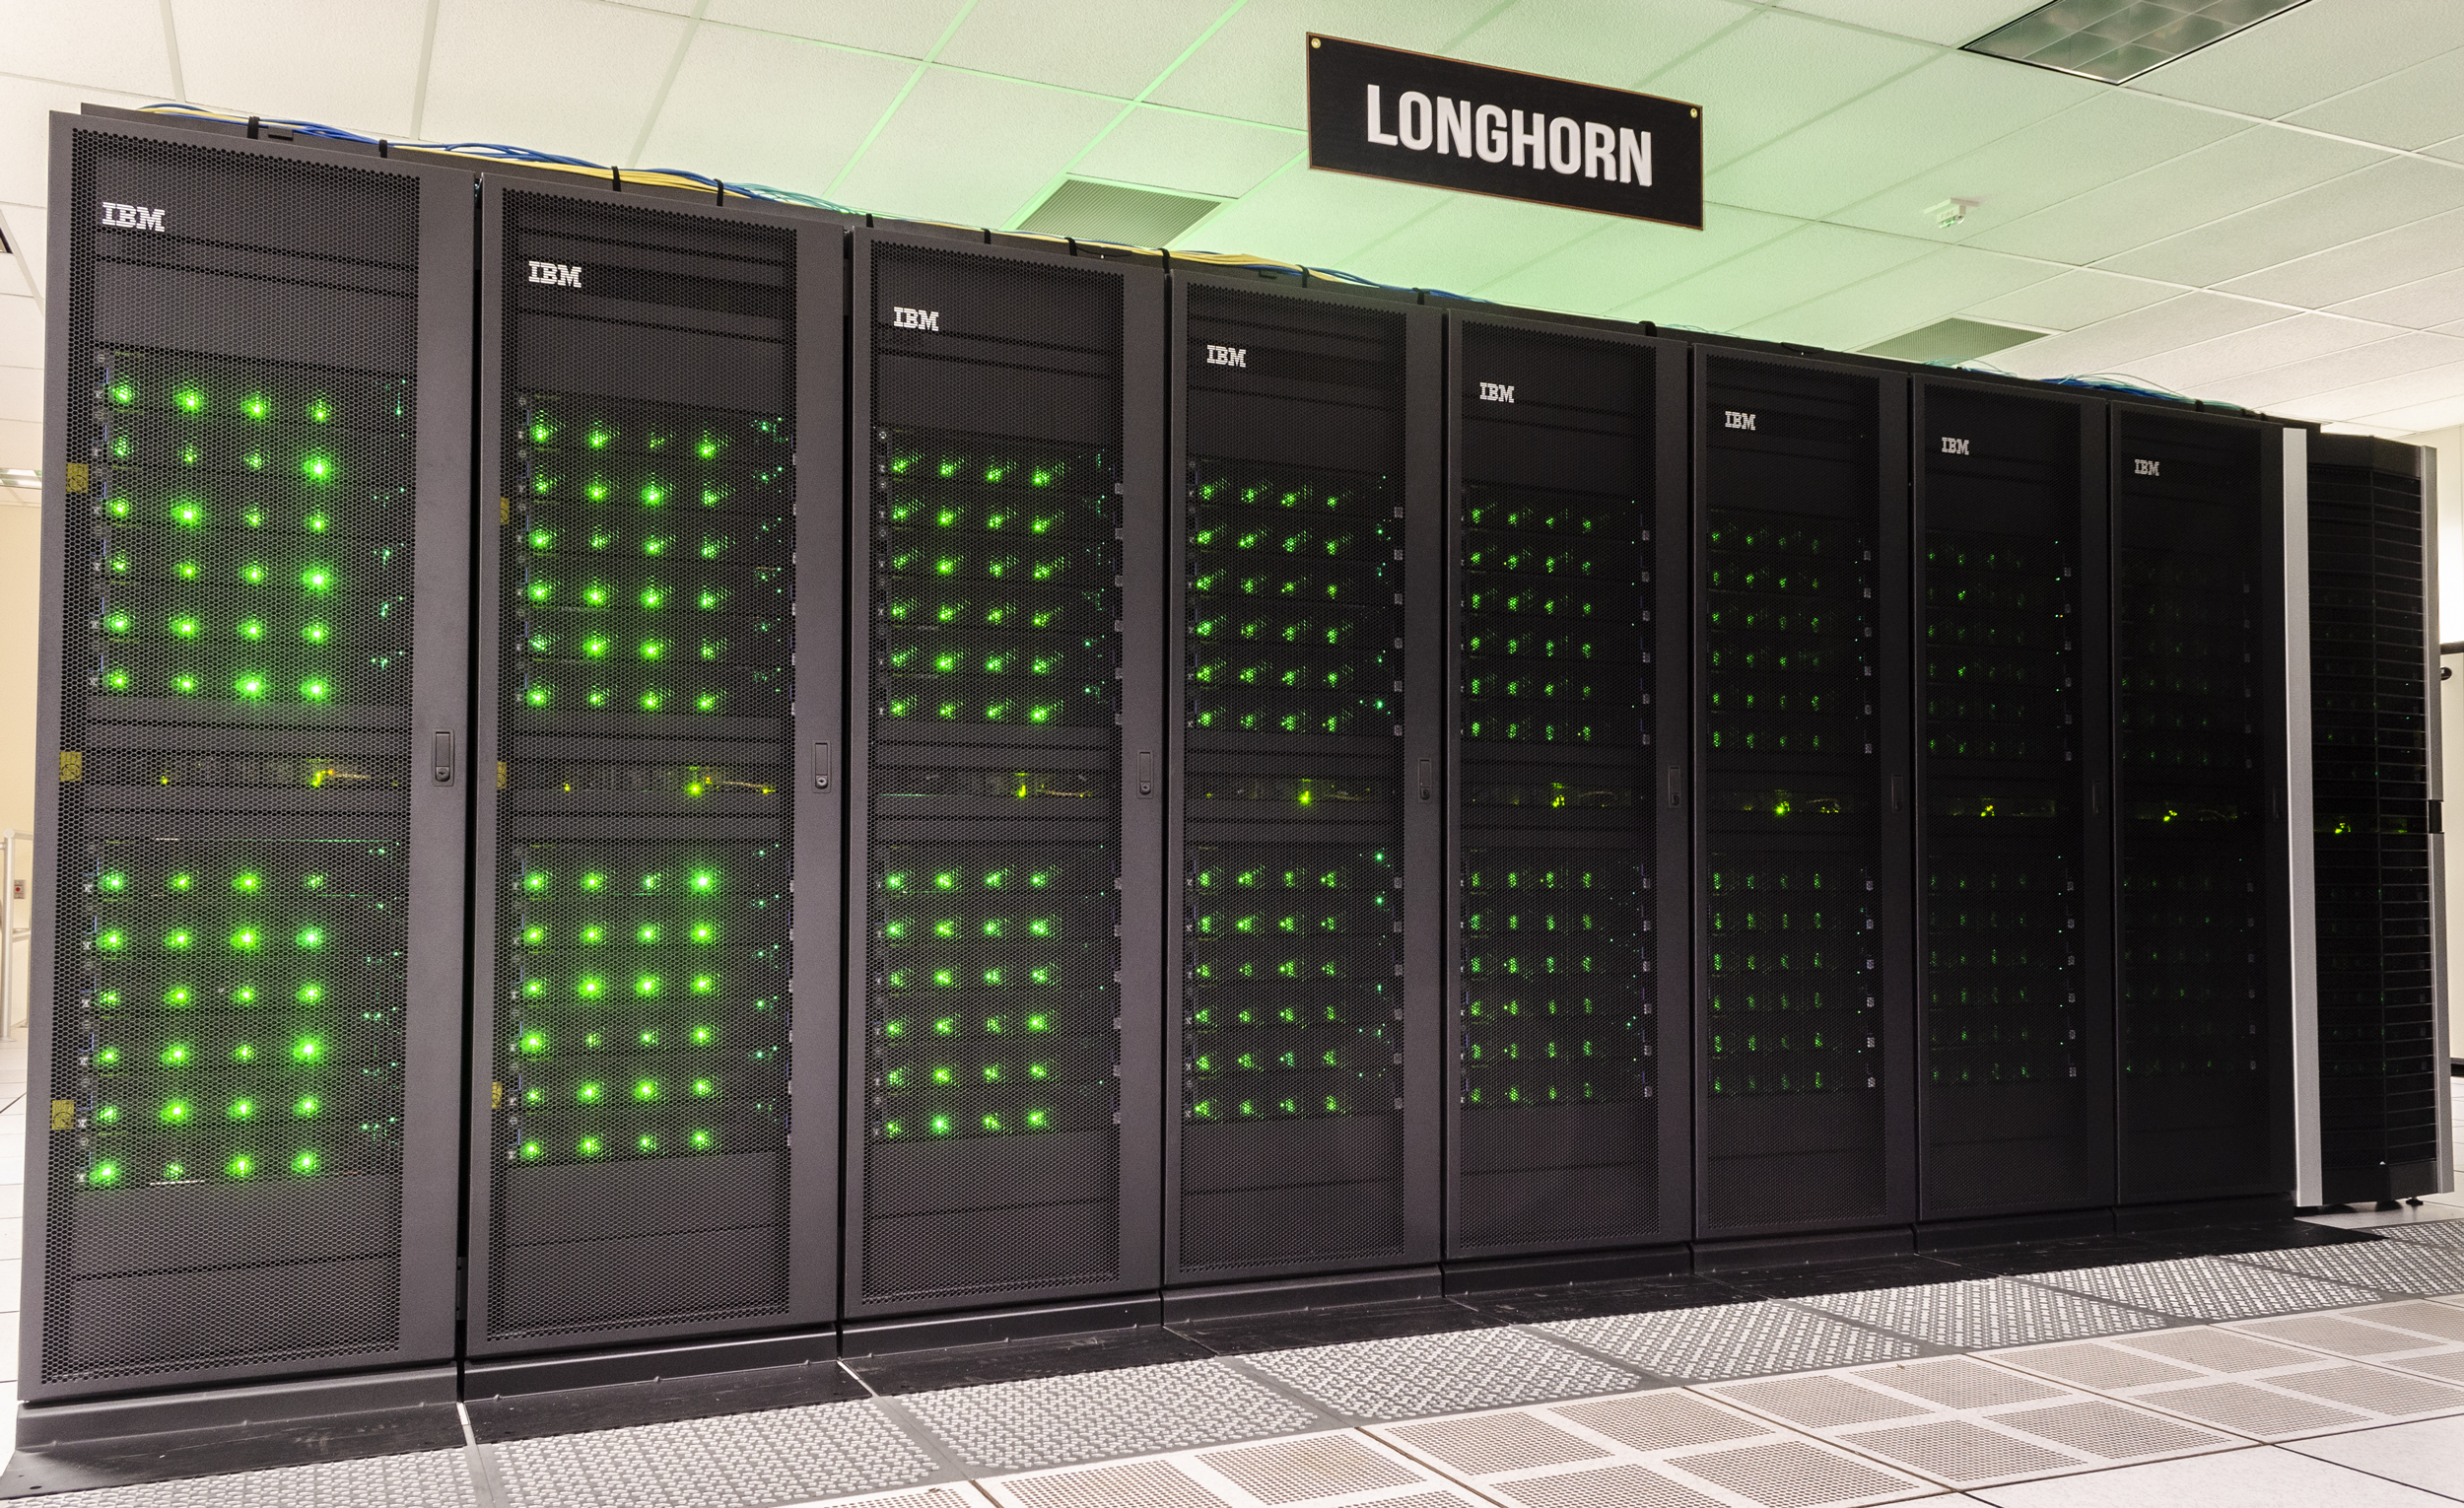 TACC's Longhorn Cluster